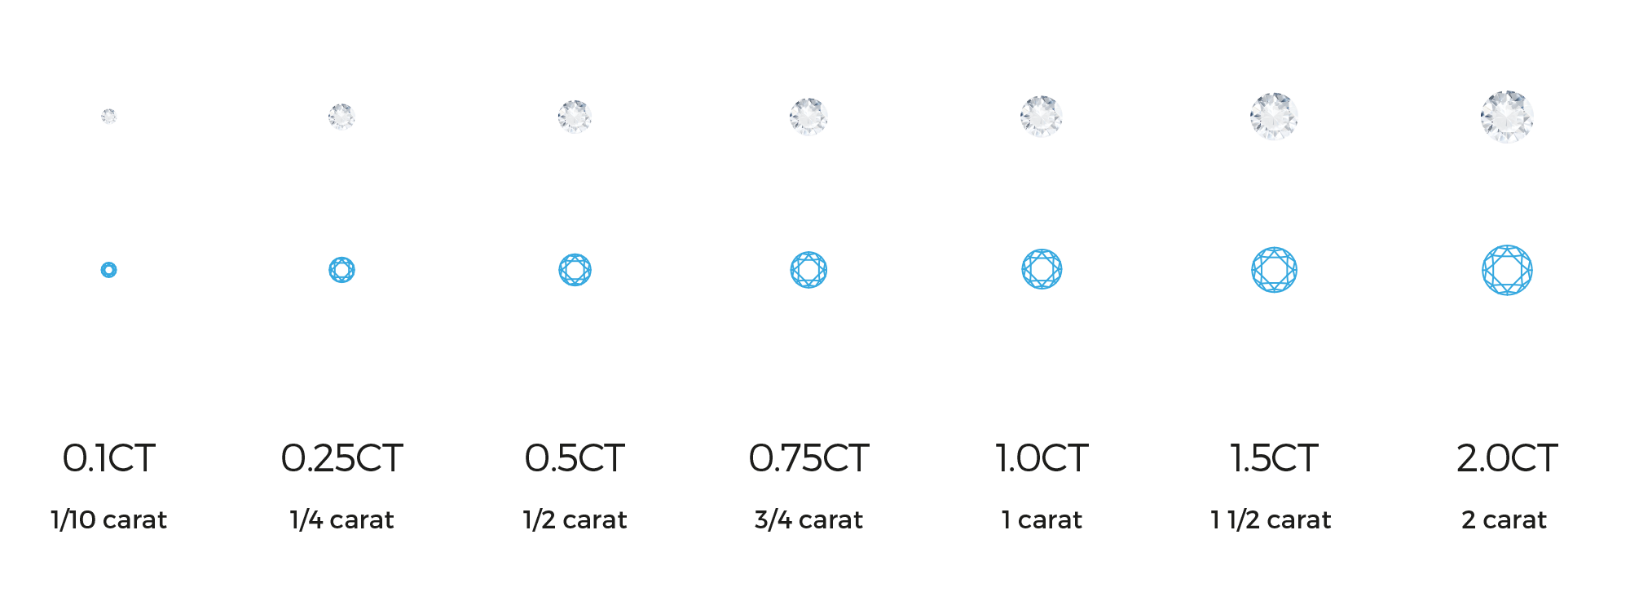 Carat weight and physical dimensions